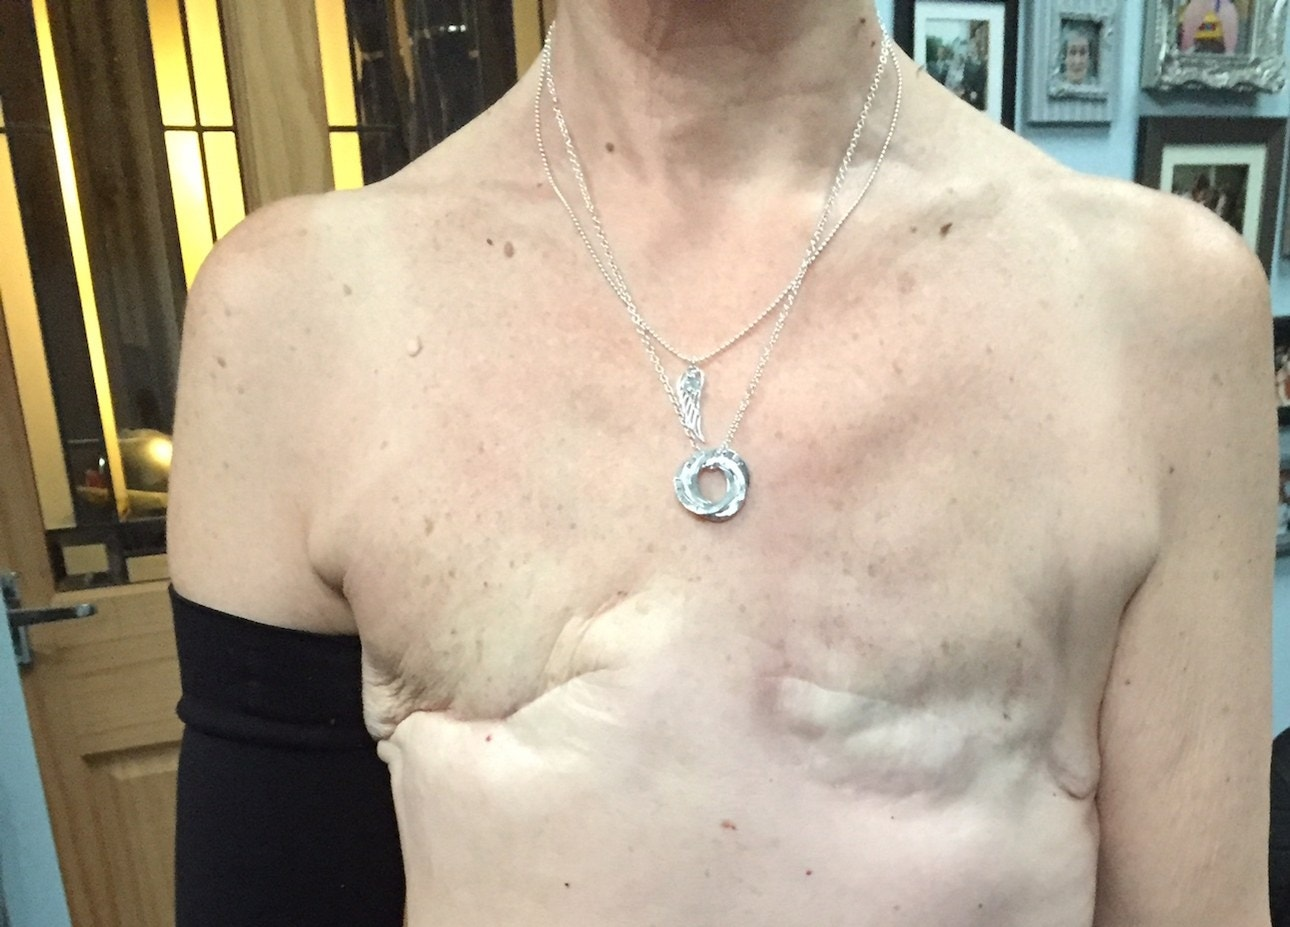 5 years after remission woman gets mastectomy tattoo on for Can you get a tattoo over a scar